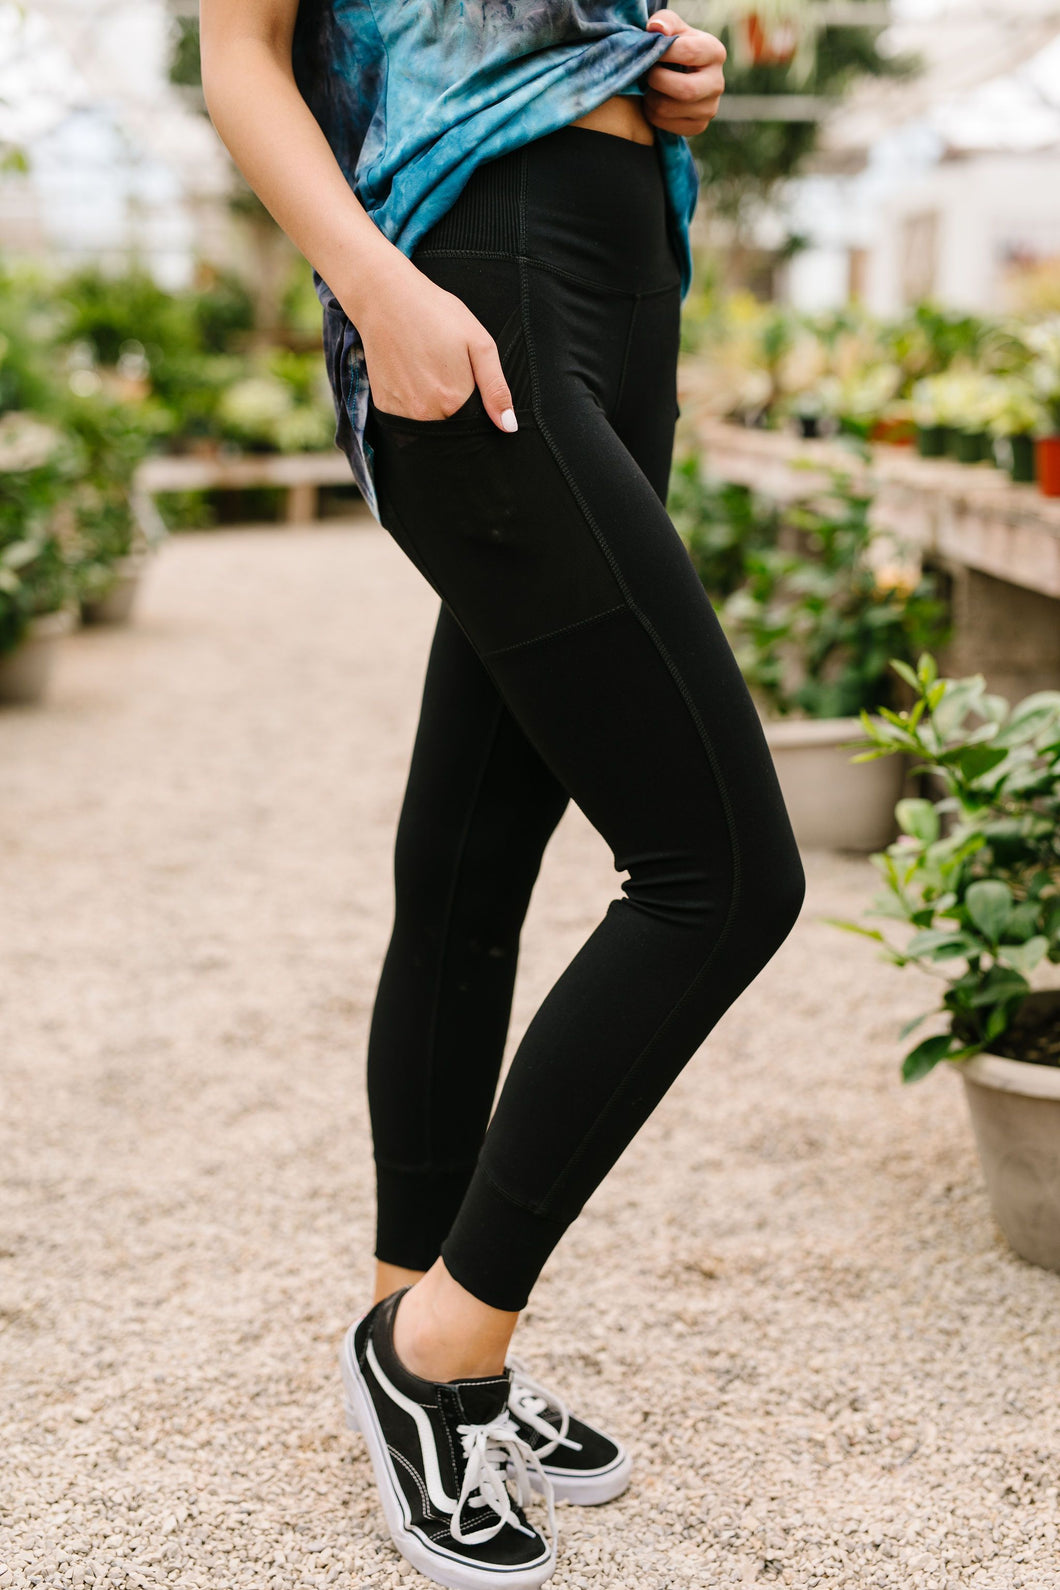 Working From Home Athletic Leggings - SAMPLE - Smith & Vena Online Boutique